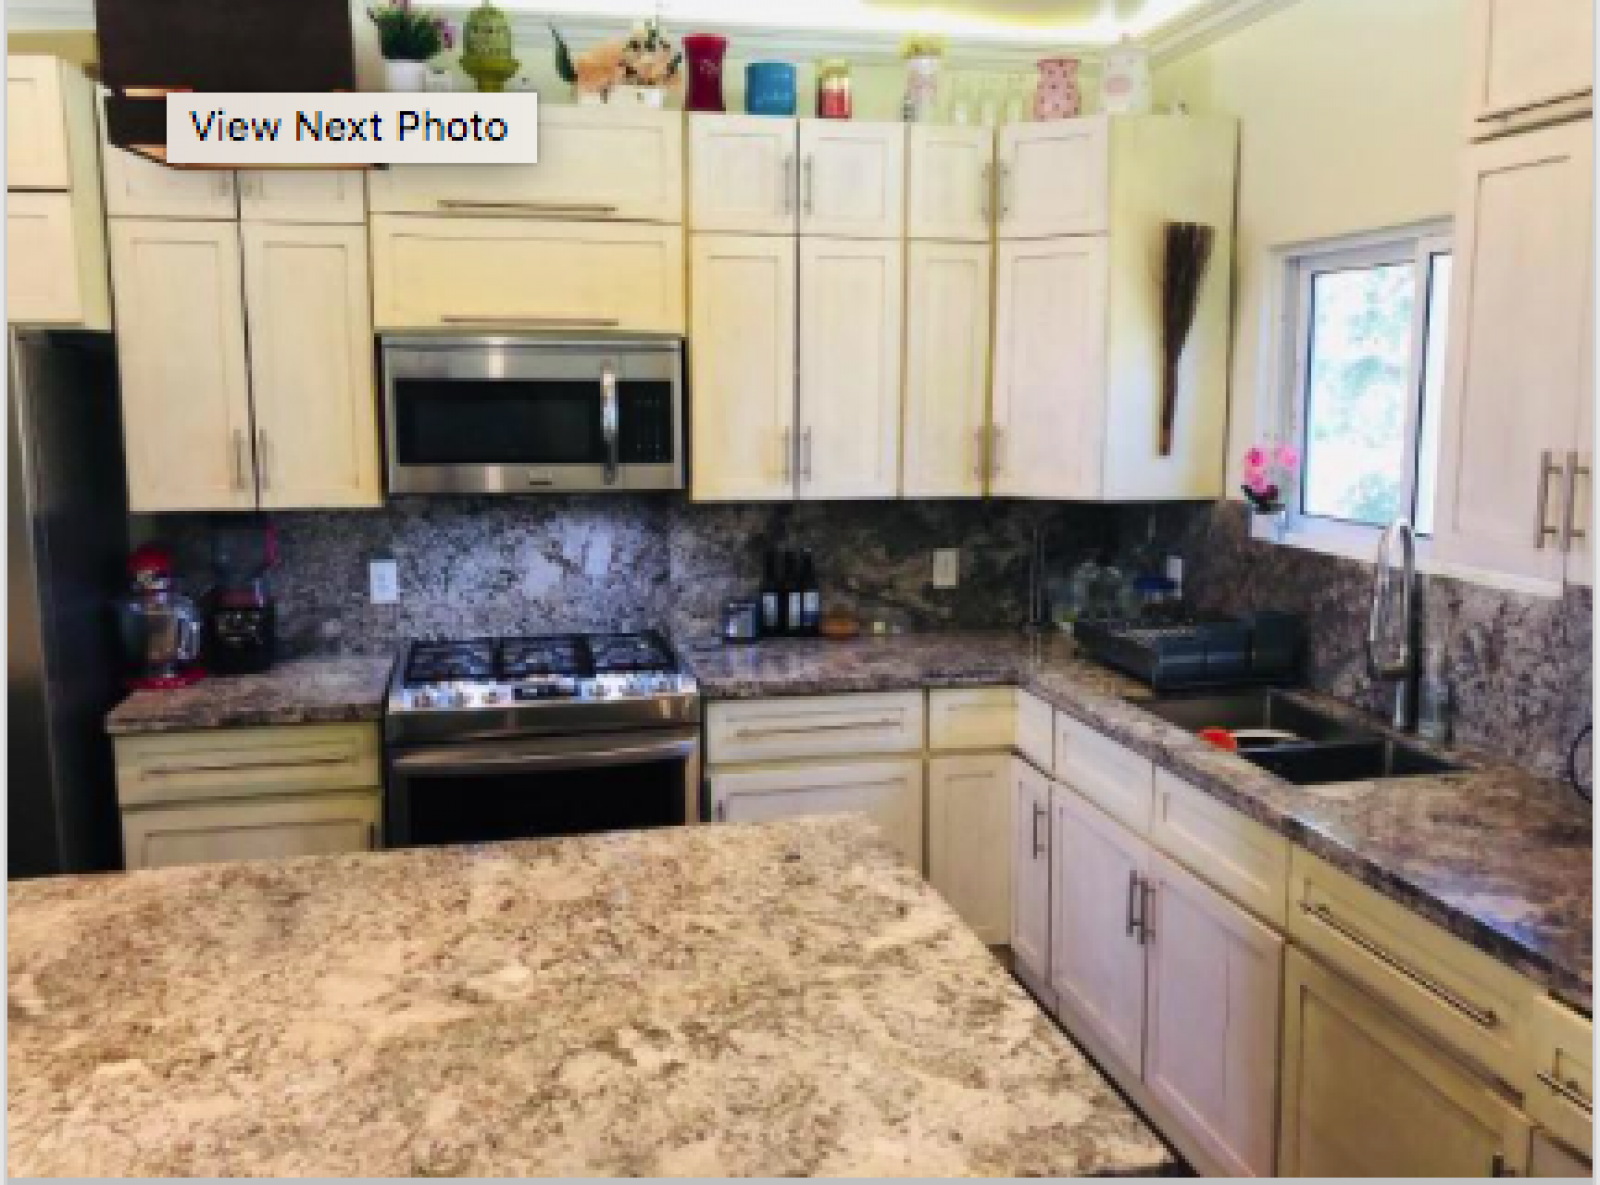 High-end appliances, fully equipped and designed for entertaining.